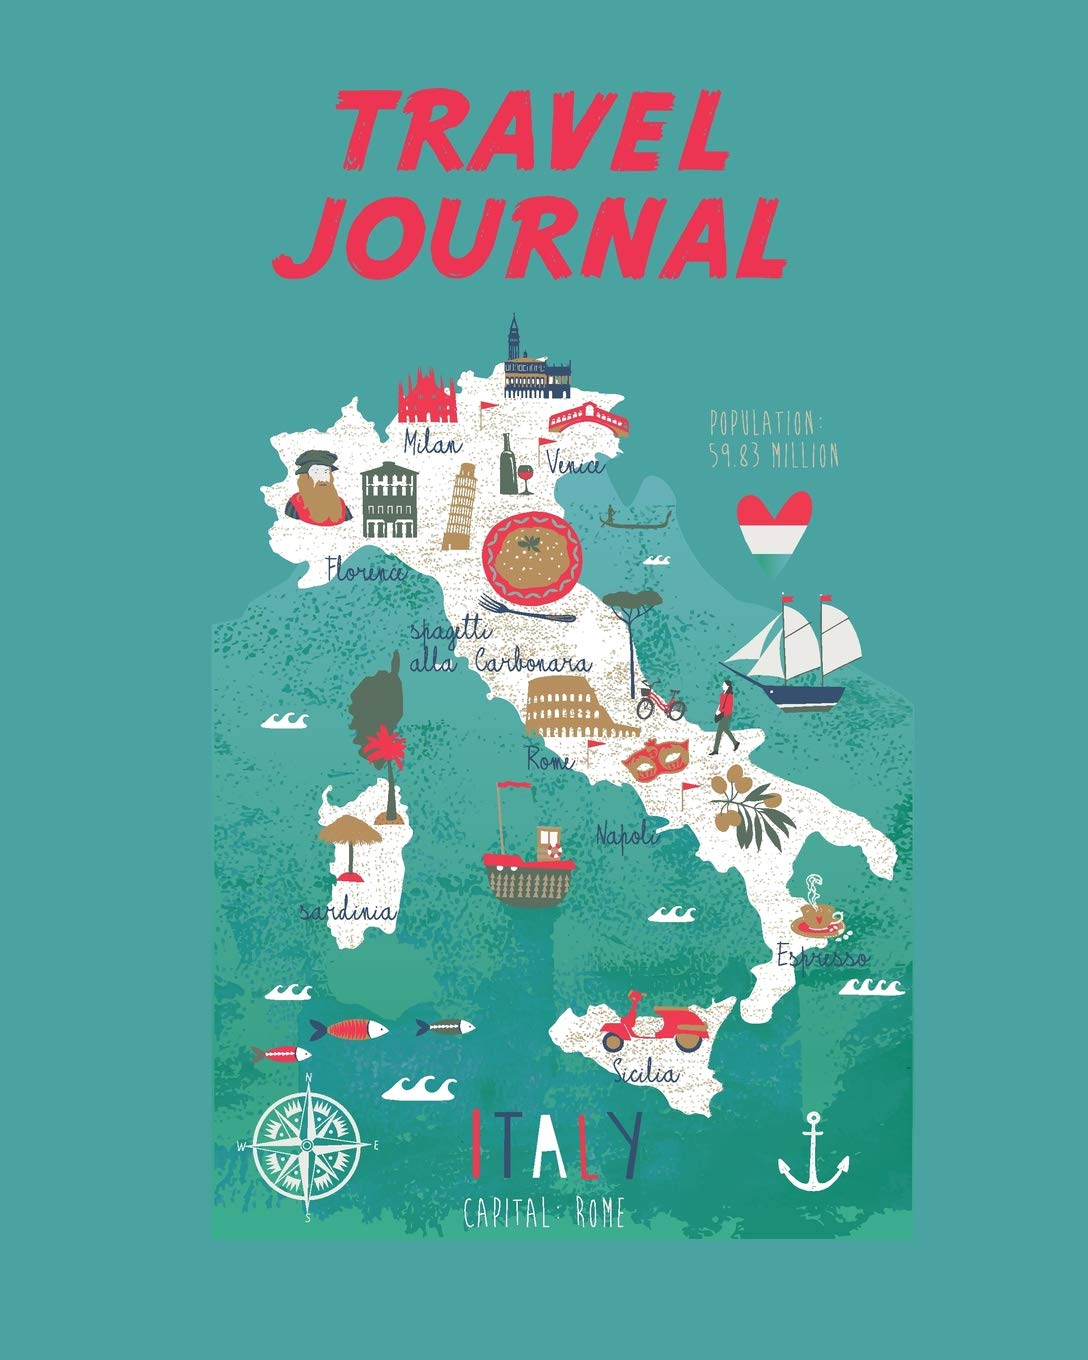 Map Of Italy Simple.Travel Journal Italy Map Kid S Travel Journal Simple Fun Holiday